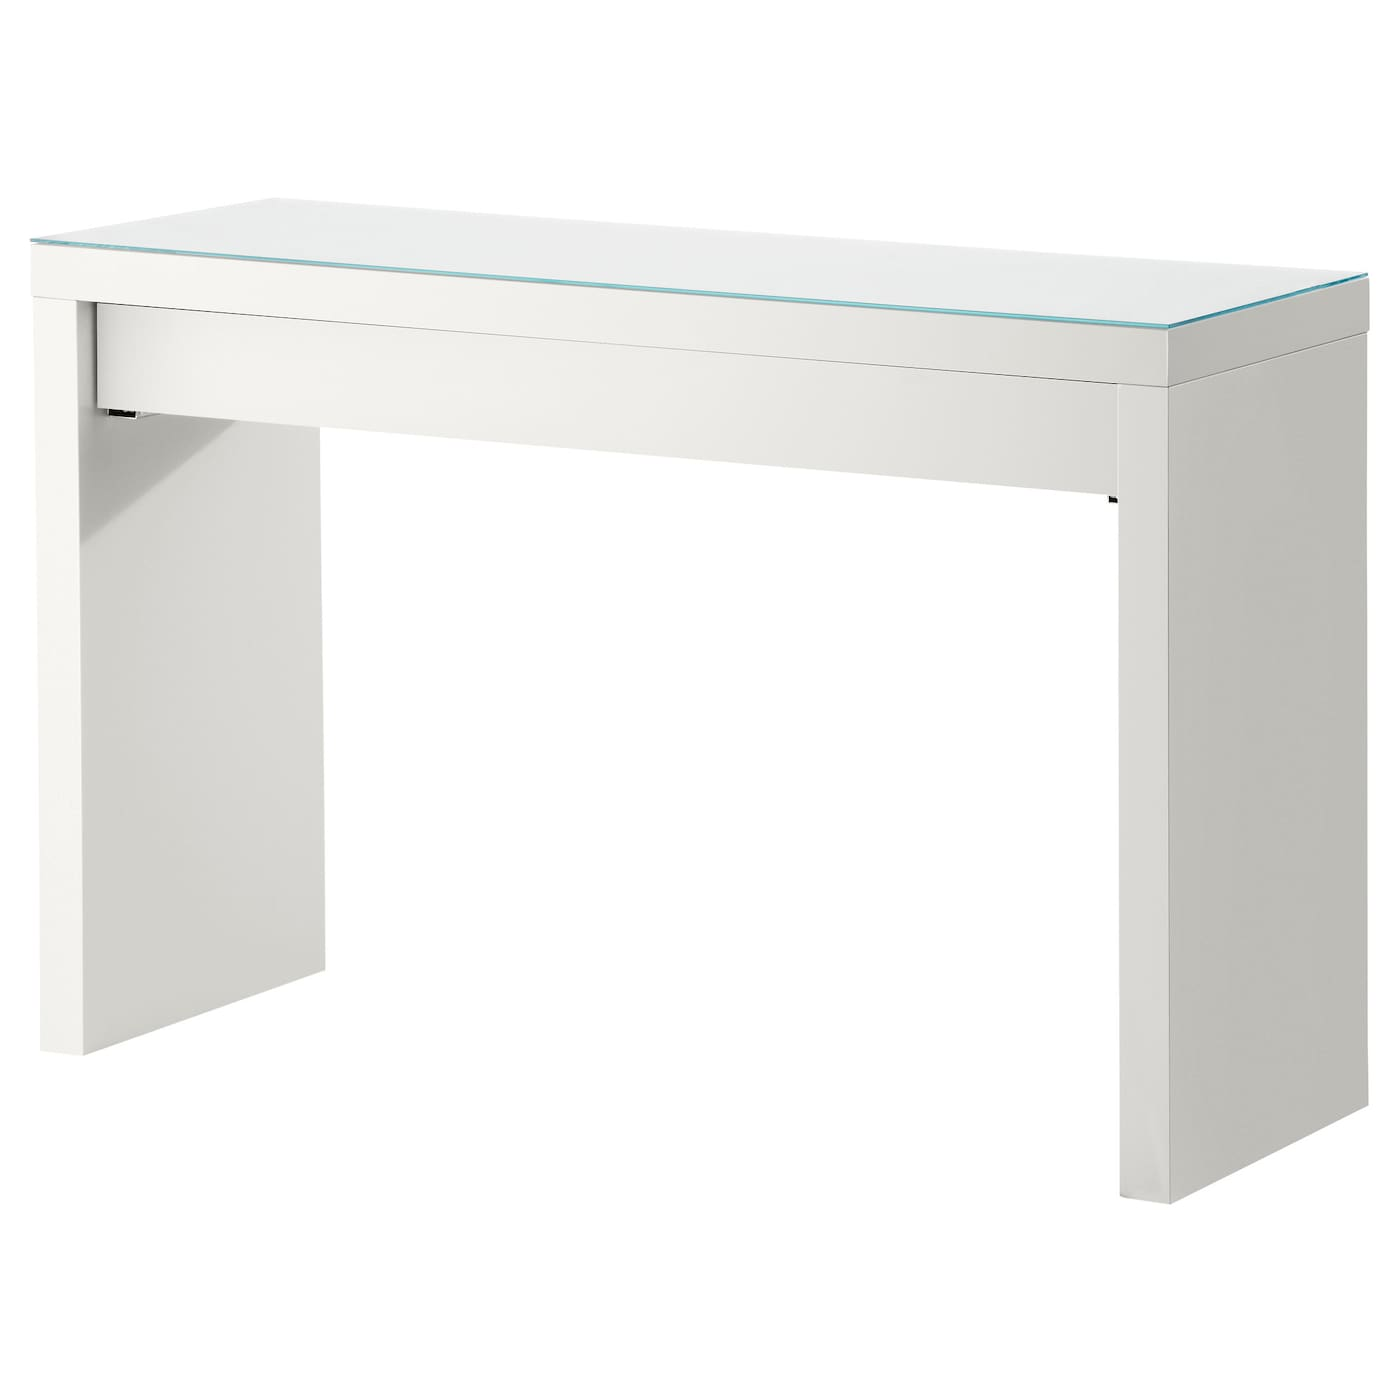 Dressing table mirrors ikea - Ikea Malm Dressing Table Smooth Running Drawer With Pull Out Stop